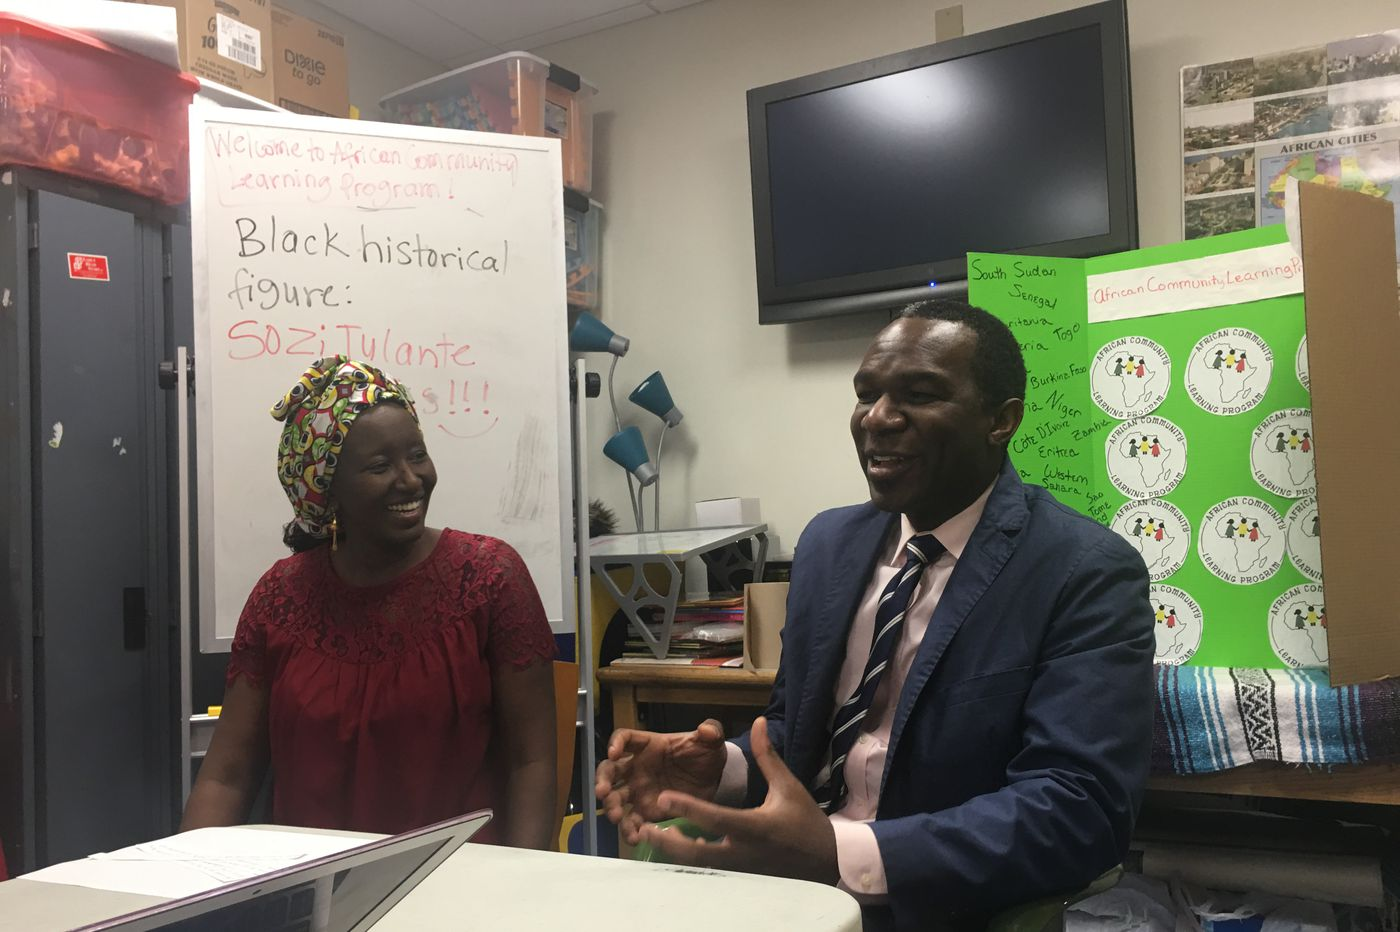 Philadelphia's many African students need culturally inclusive education | Opinion